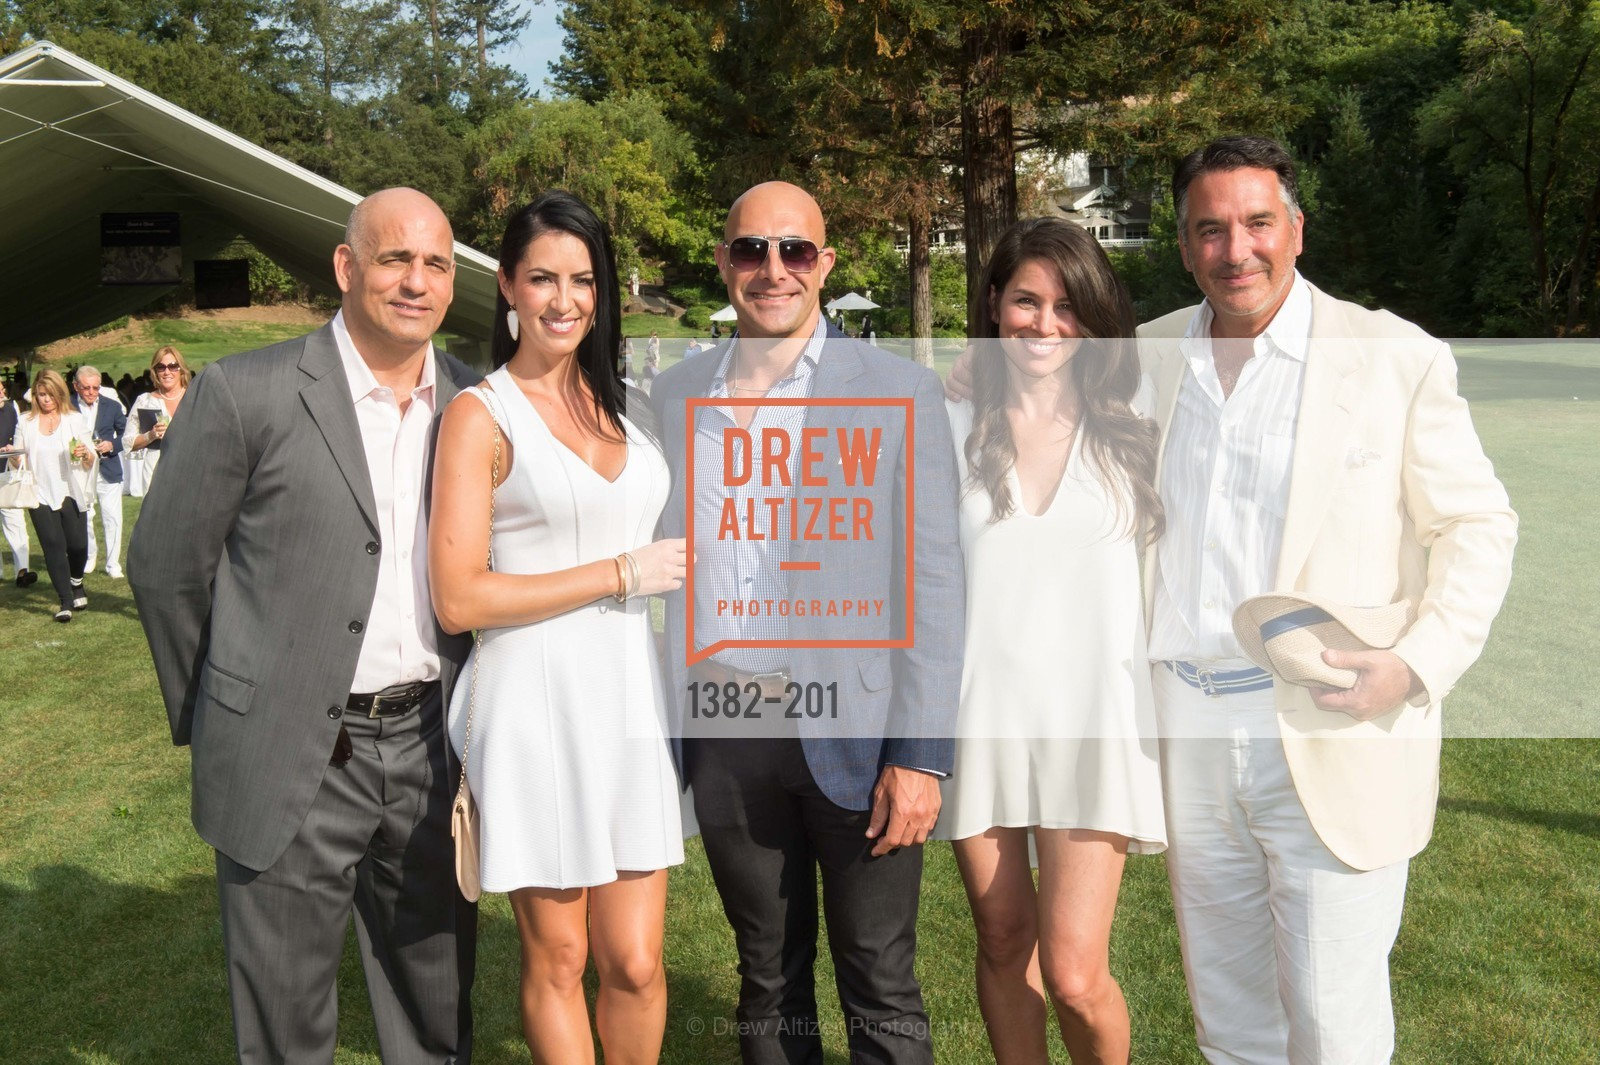 Gus Stanos, Martha Stanos, Justin Wise, Heidi Mullens, Michael Polenske, Festival del Sole Annual Gala at Meadowood Napa Valley, Meadowood Napa Valley. 900 Meadowood Ln, July 19th, 2015,Drew Altizer, Drew Altizer Photography, full-service agency, private events, San Francisco photographer, photographer california